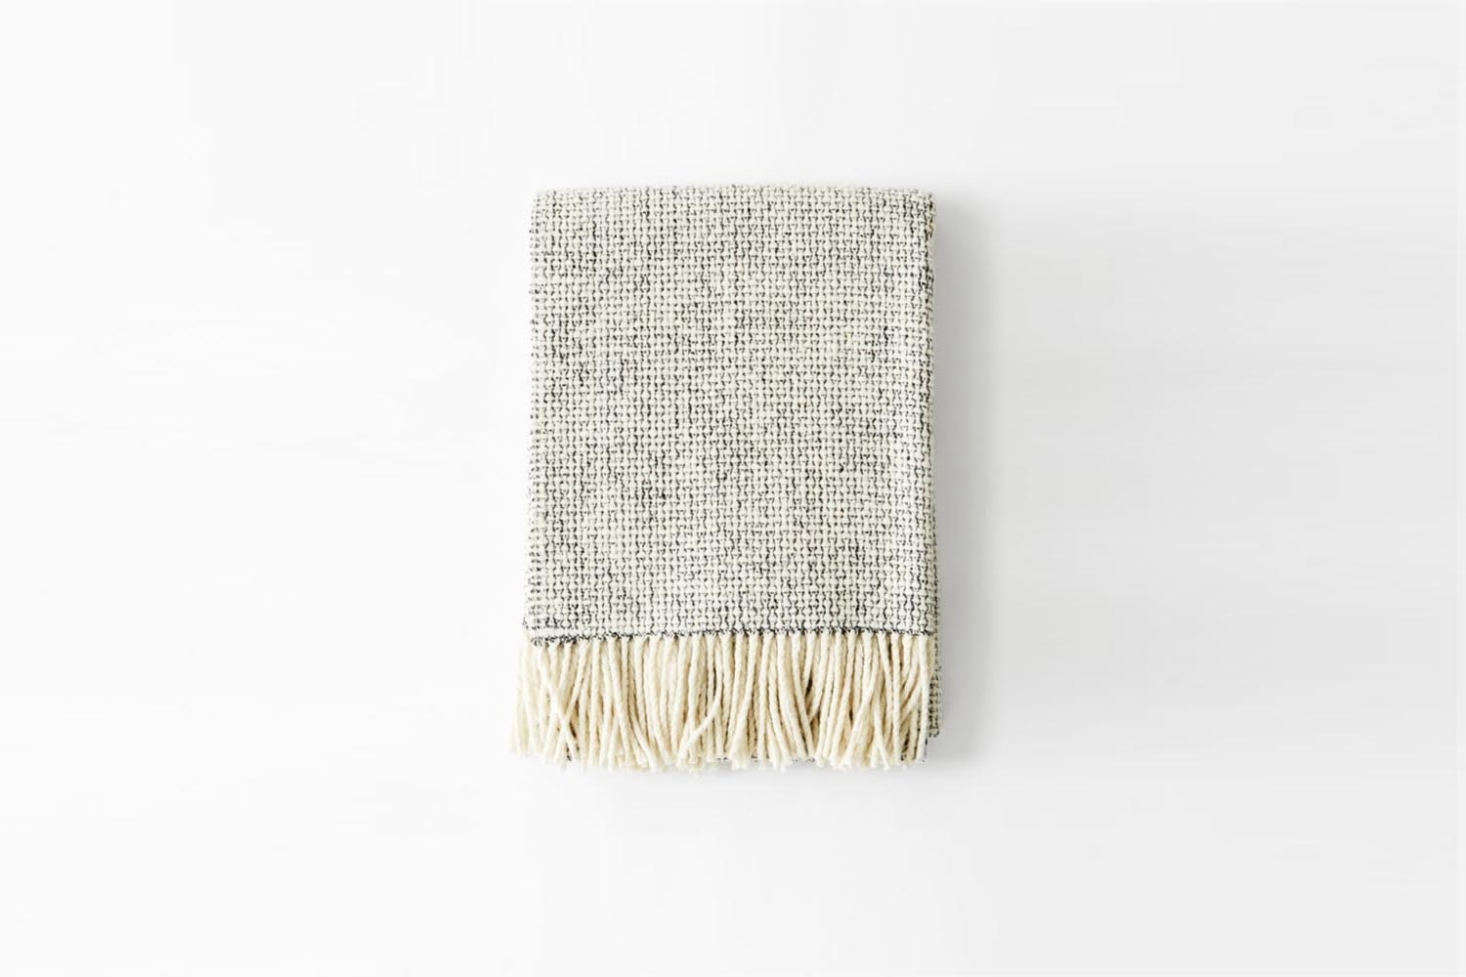 The Mourne Textiles Mended Tweed Blanket in Handwoven Charcoal Grey is £4 at Mourne Textiles.